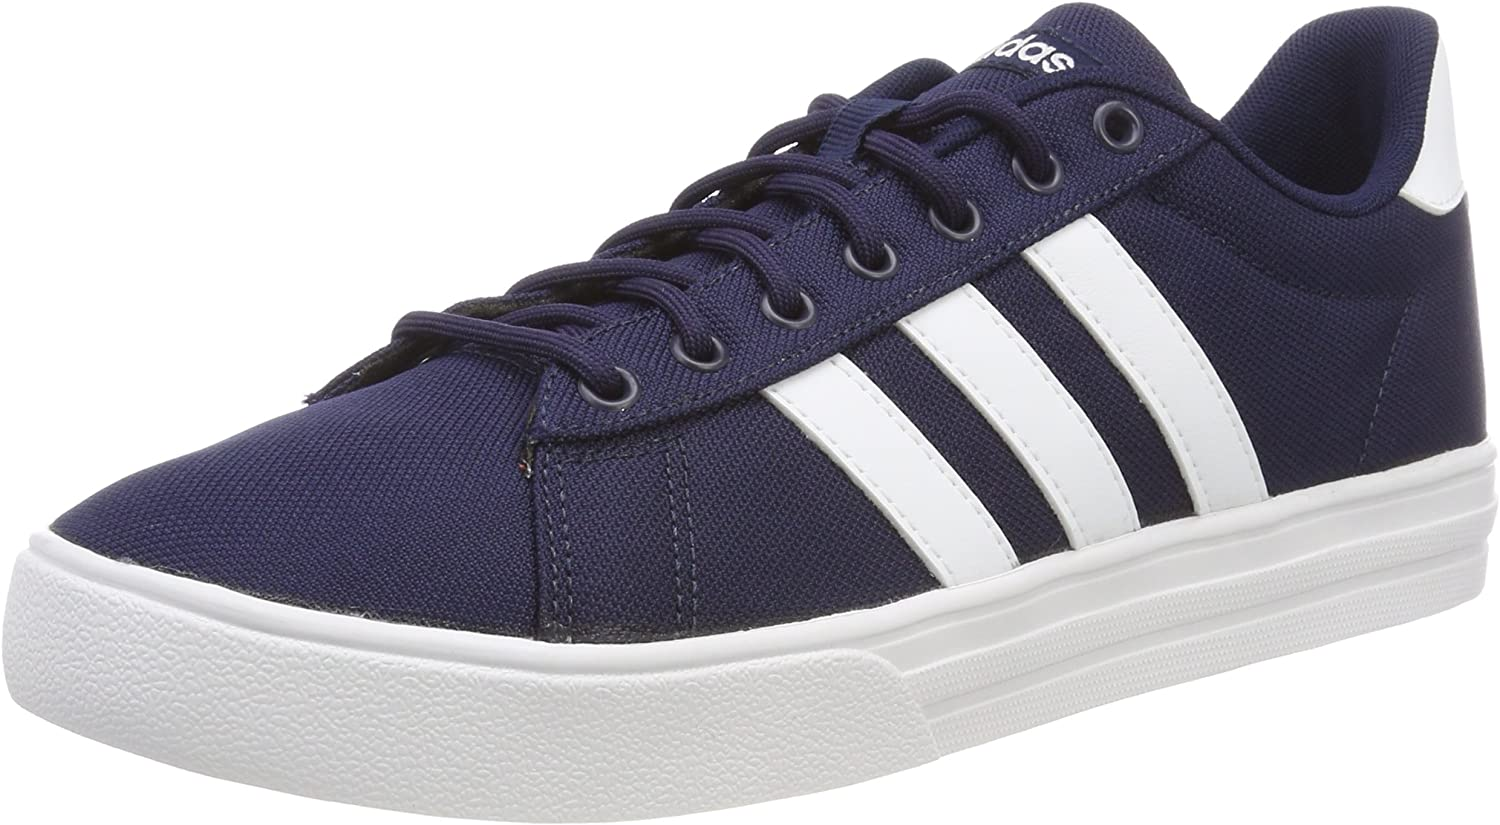 Adidas Men's Daily 2.0 Trainers